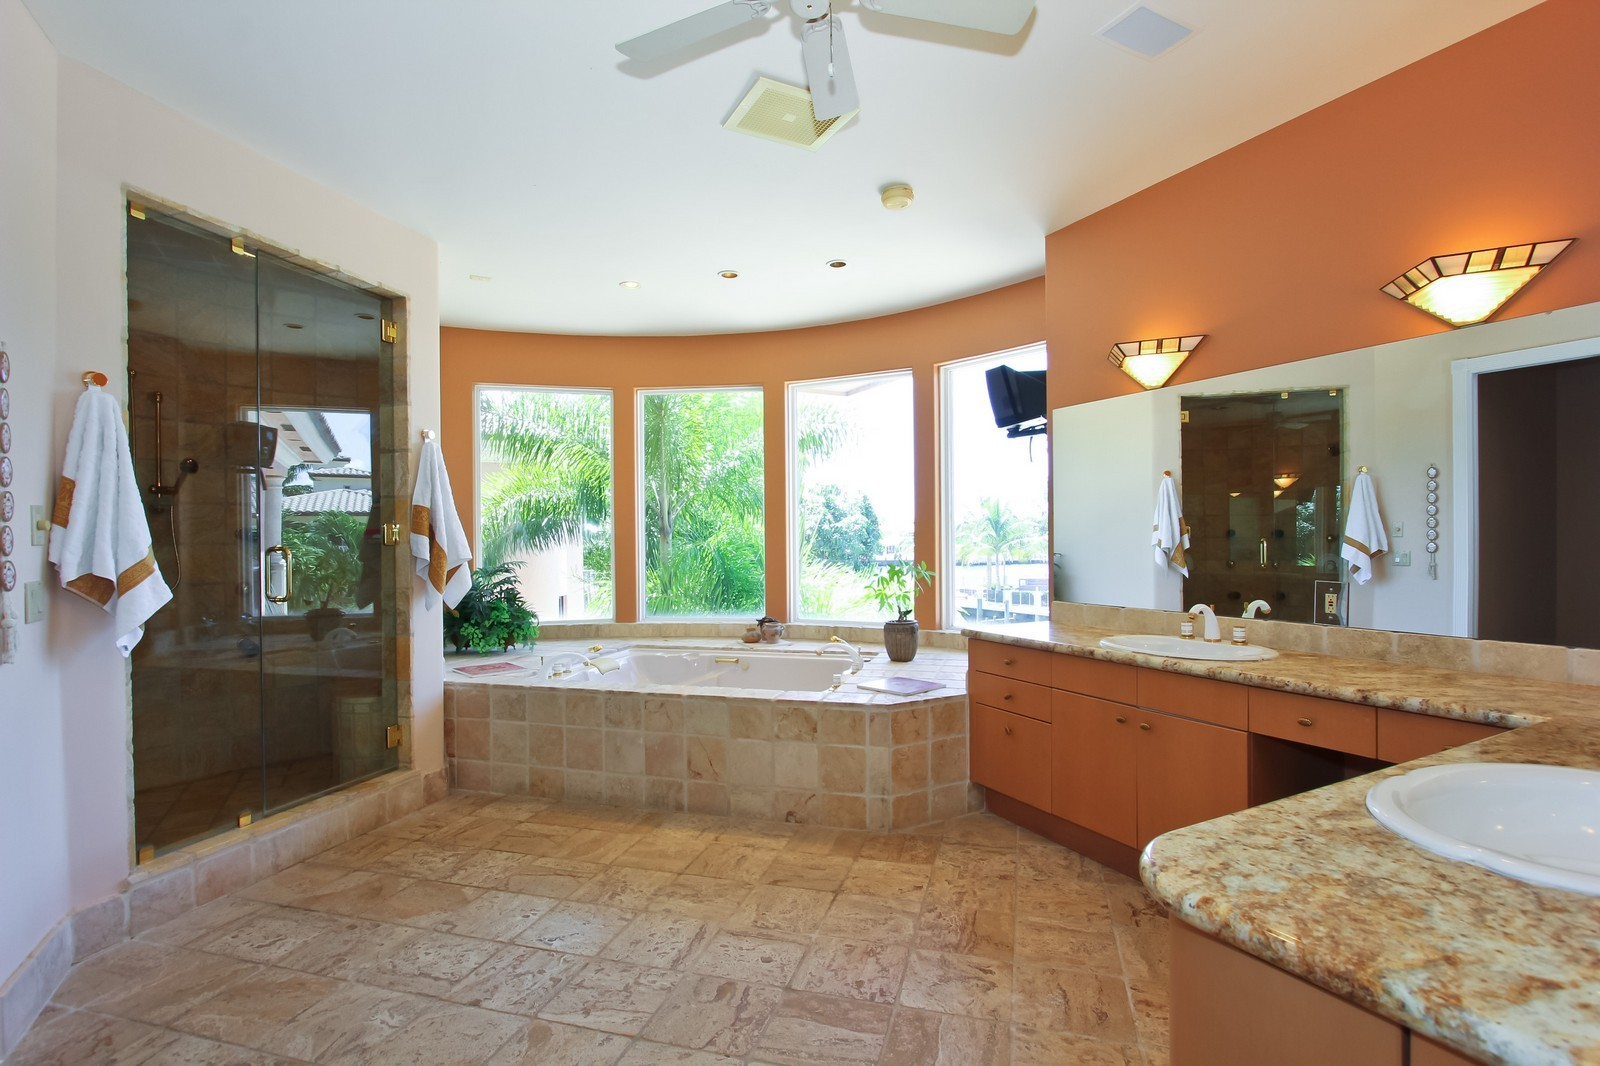 Real Estate Photography - 3310 NE 58th St, Fort Lauderdale, FL, 33308 - Master Bathroom